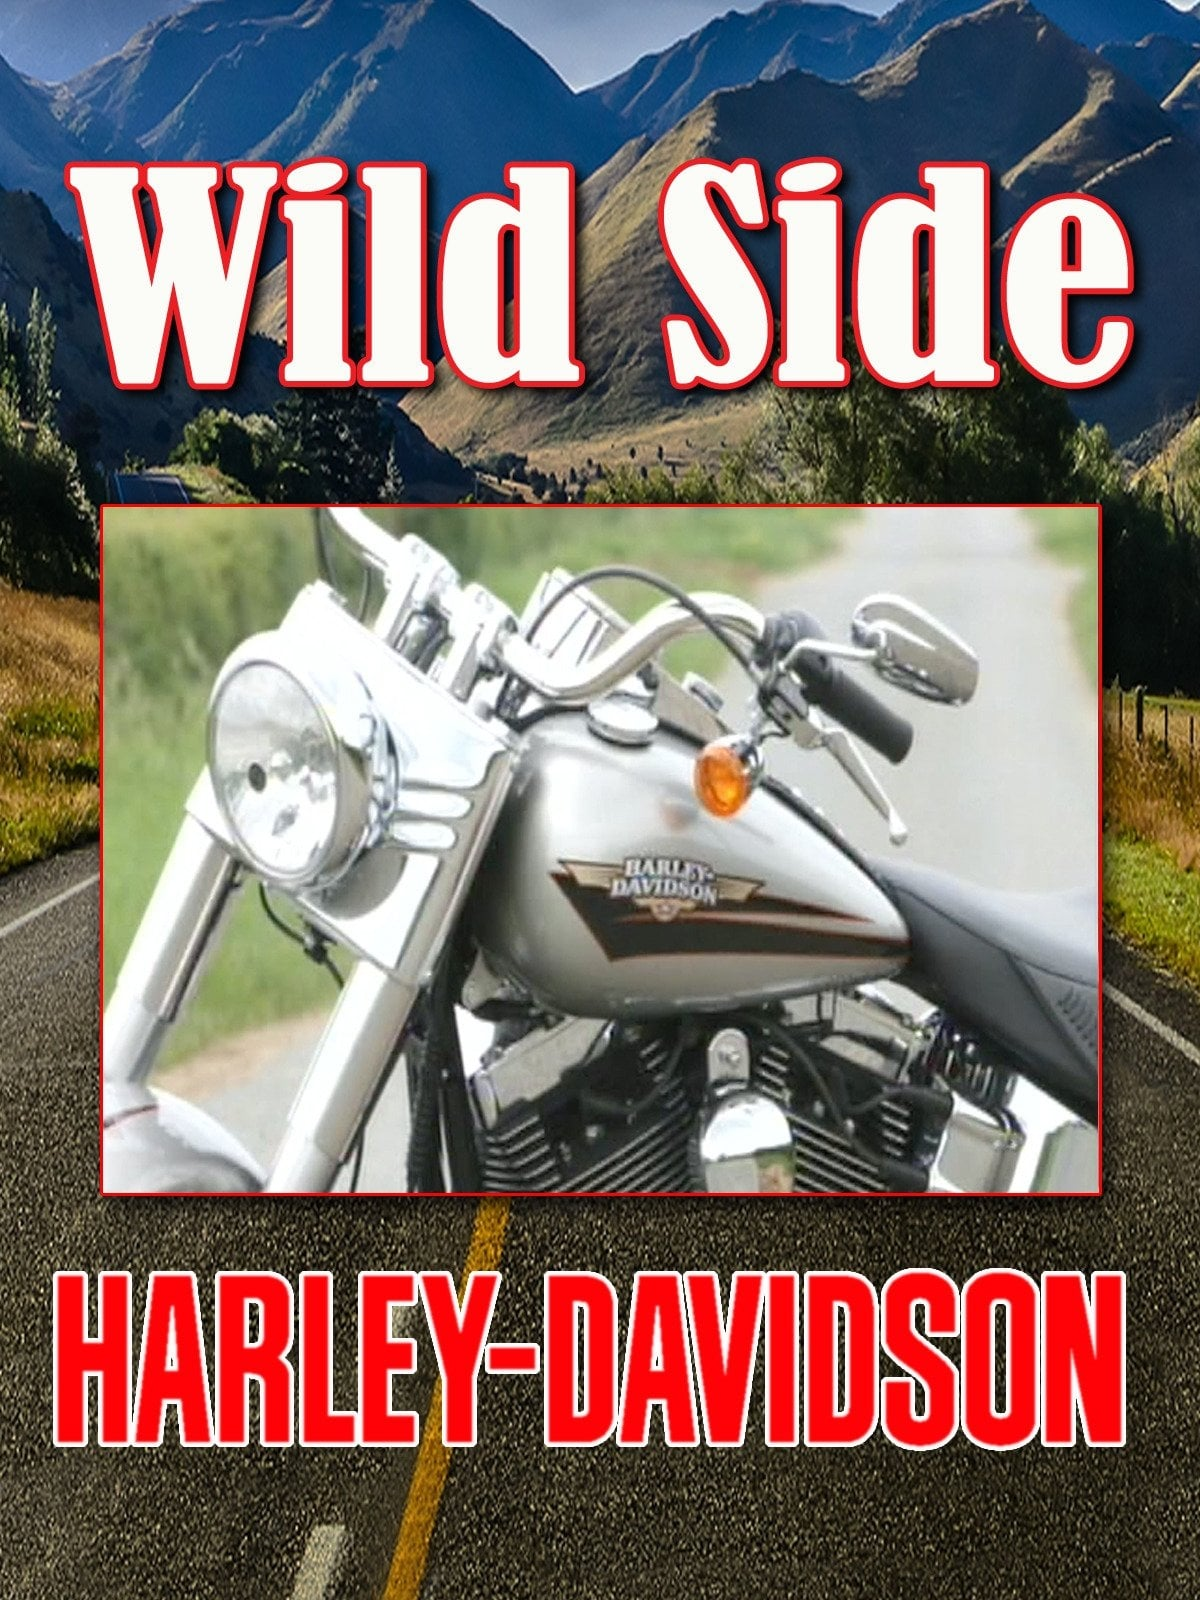 Ride On The Wild Side: Harley Davidson on FREECABLE TV